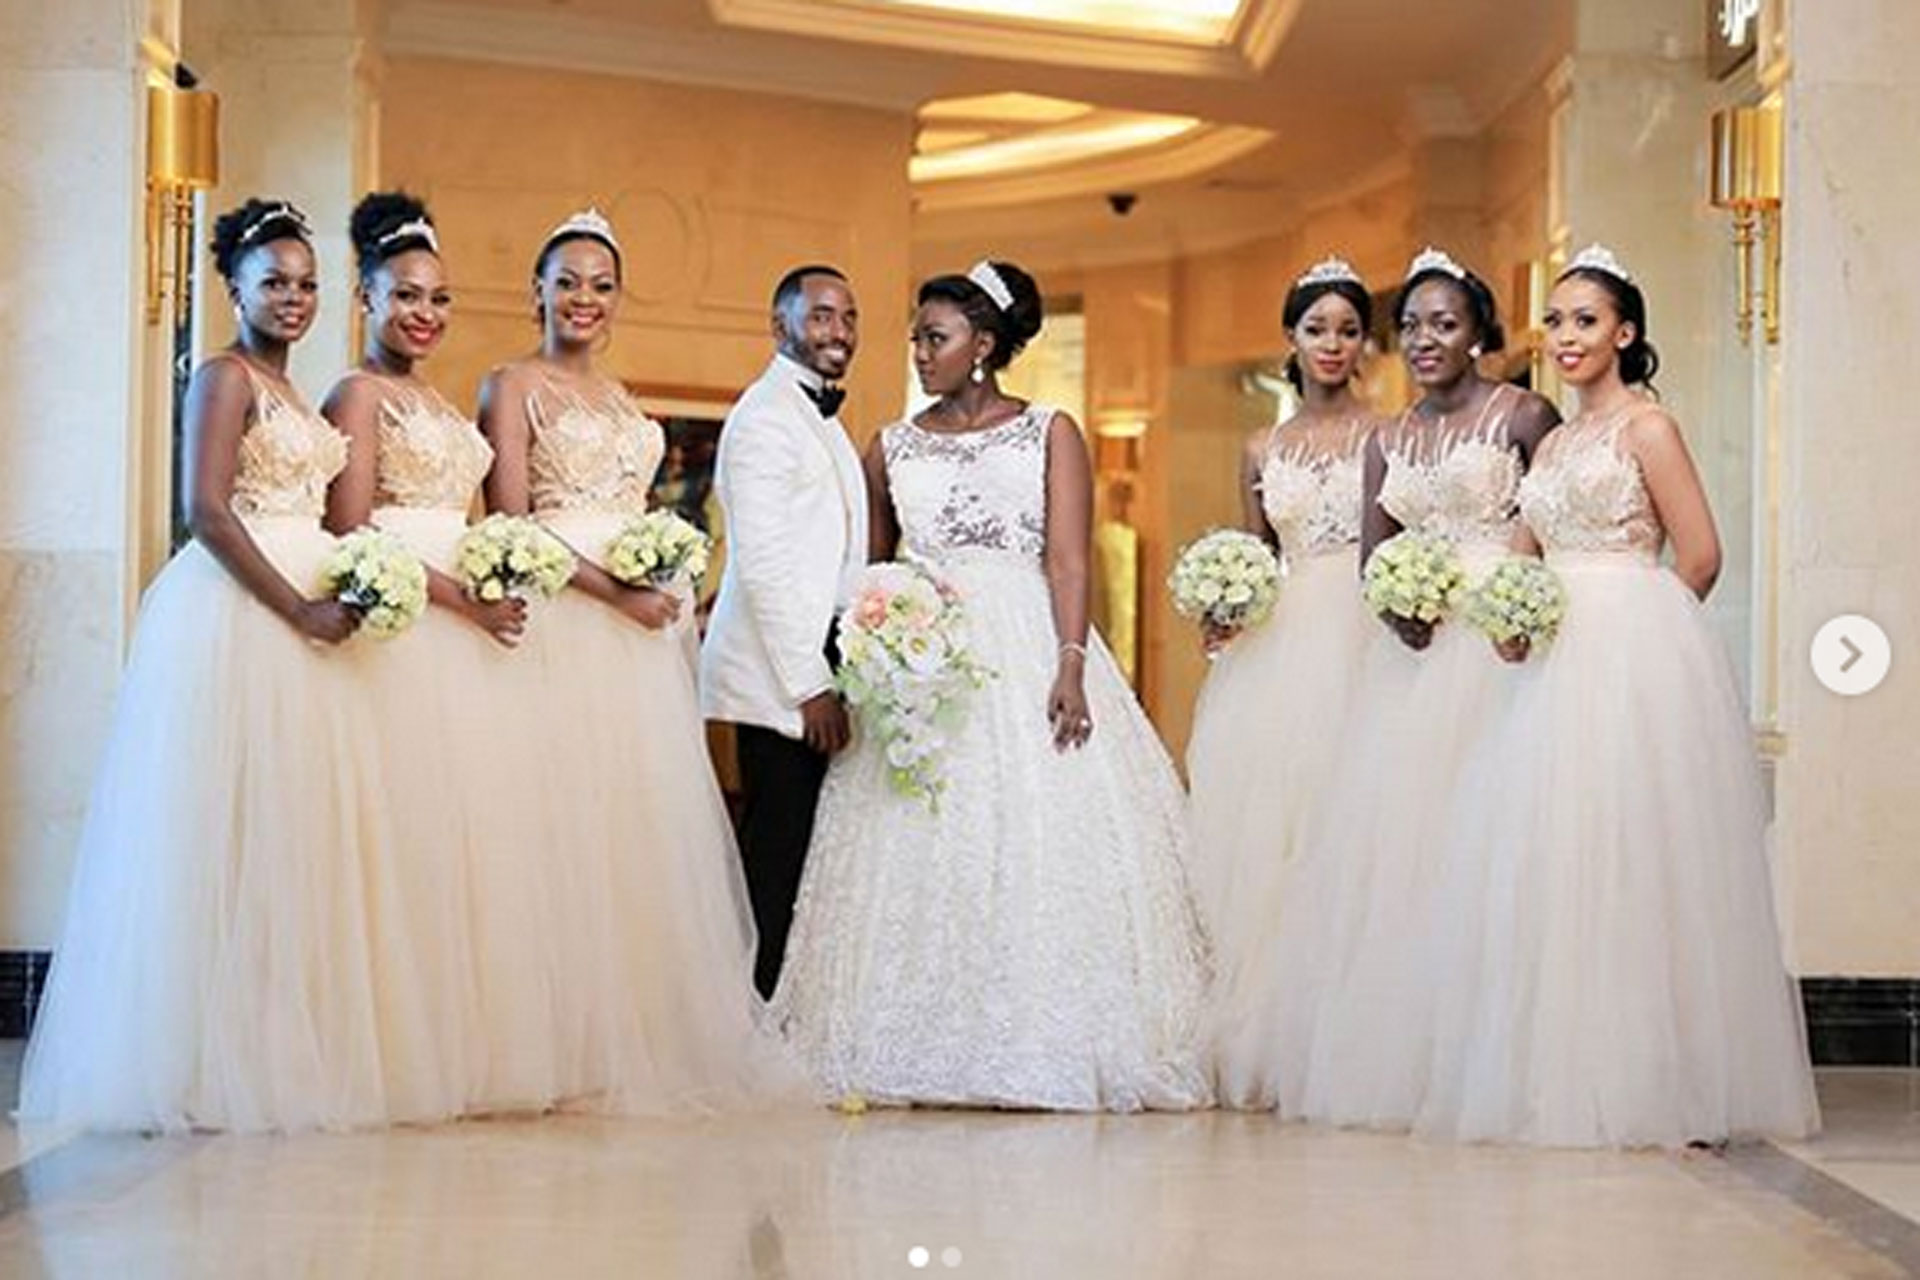 Wedding Dresses 2019 Near Me: Amazing Bridesmaids' Outfits To Consider In 2019